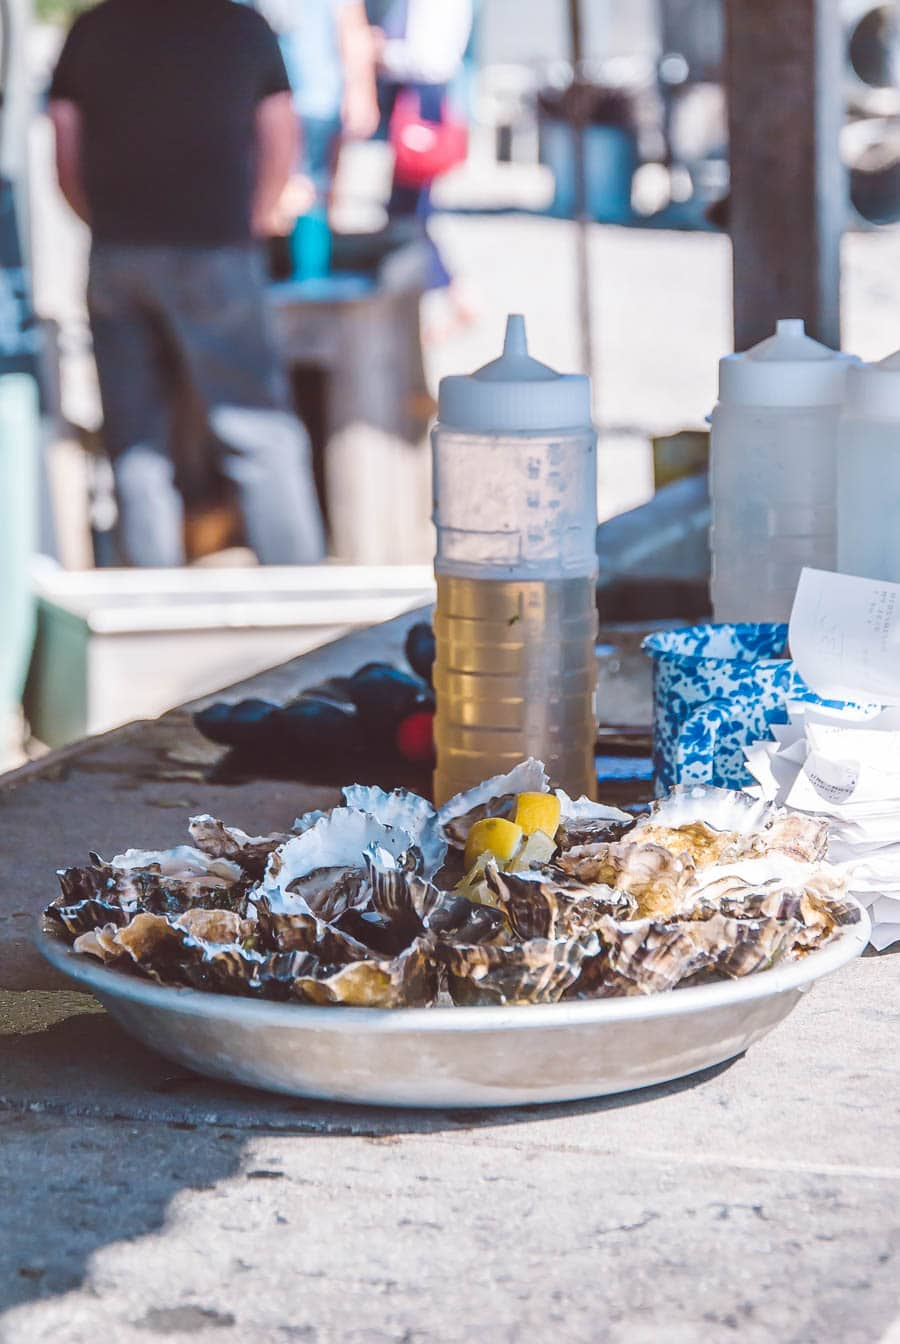 Plate of oysters on the half shell waiting at a restaurant window